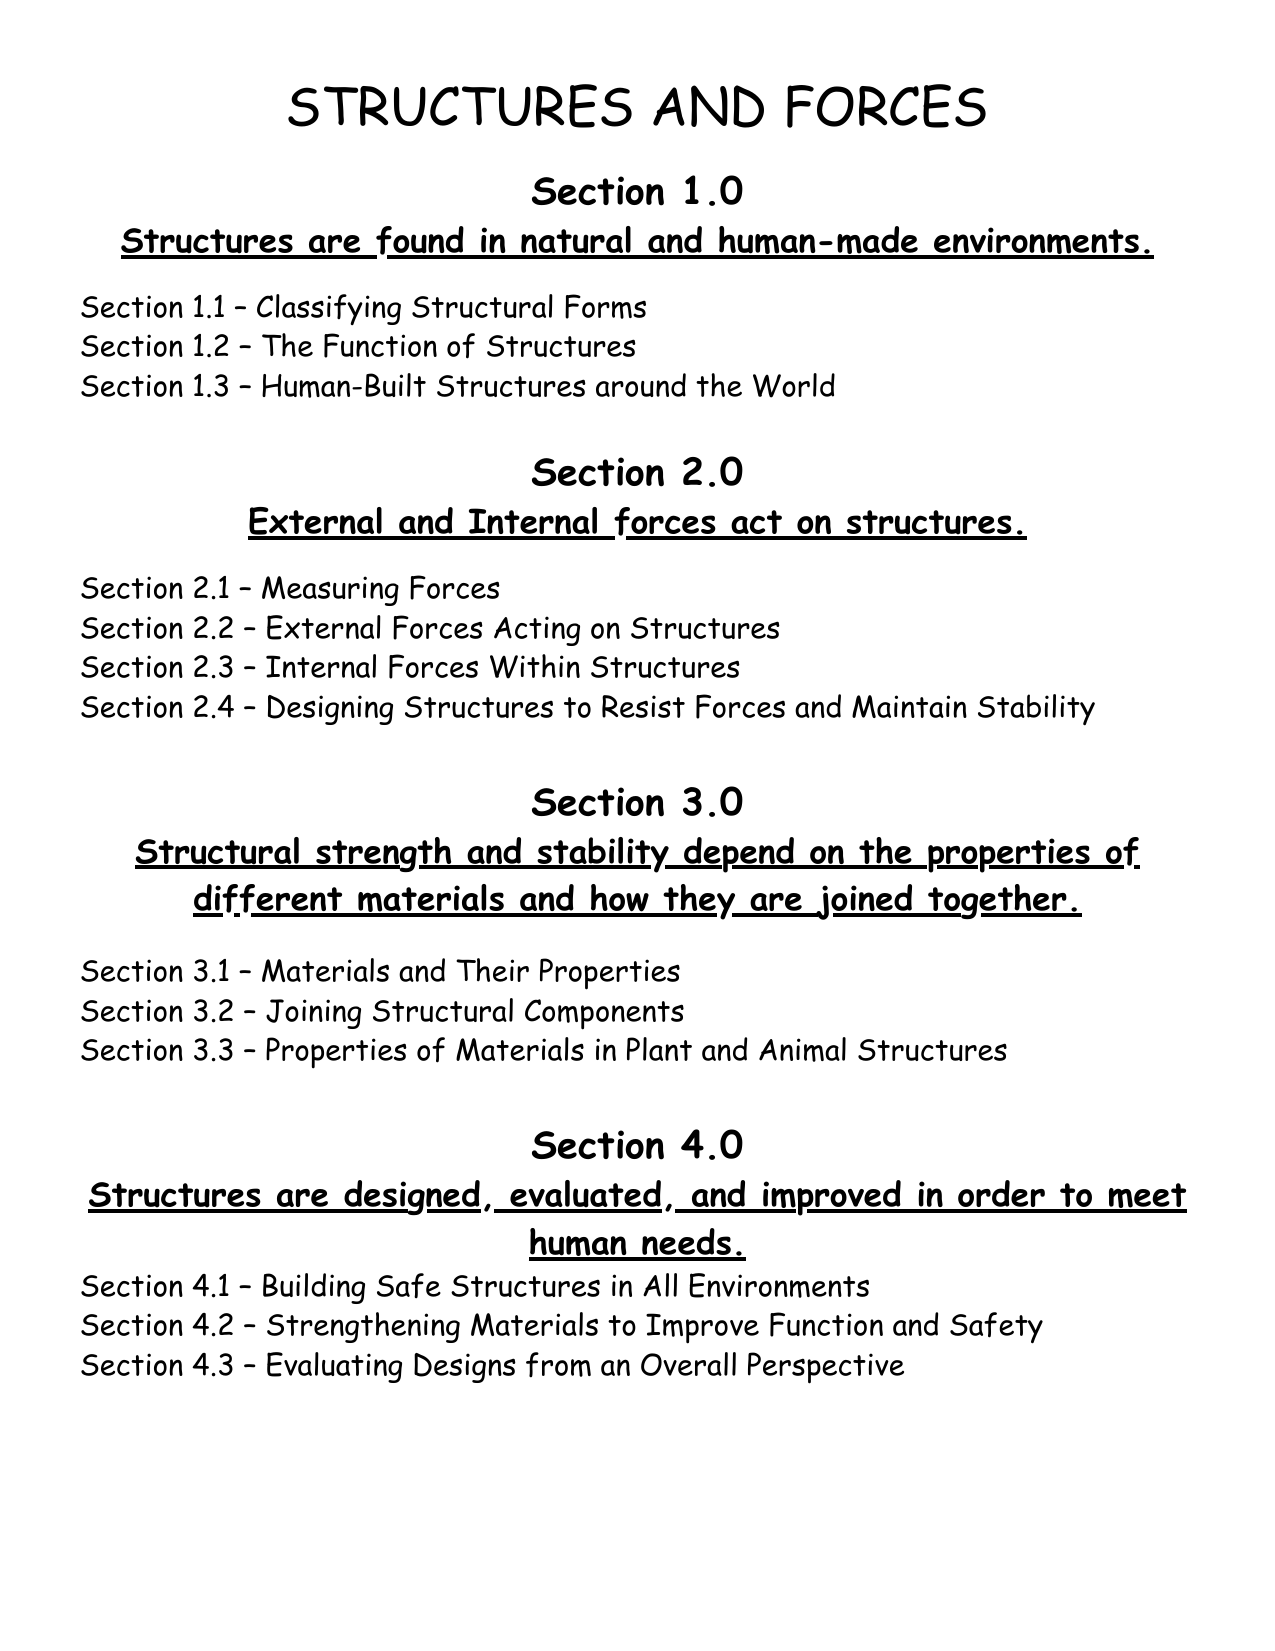 Science 7 Structure And Forces Unit And Lesson Plans